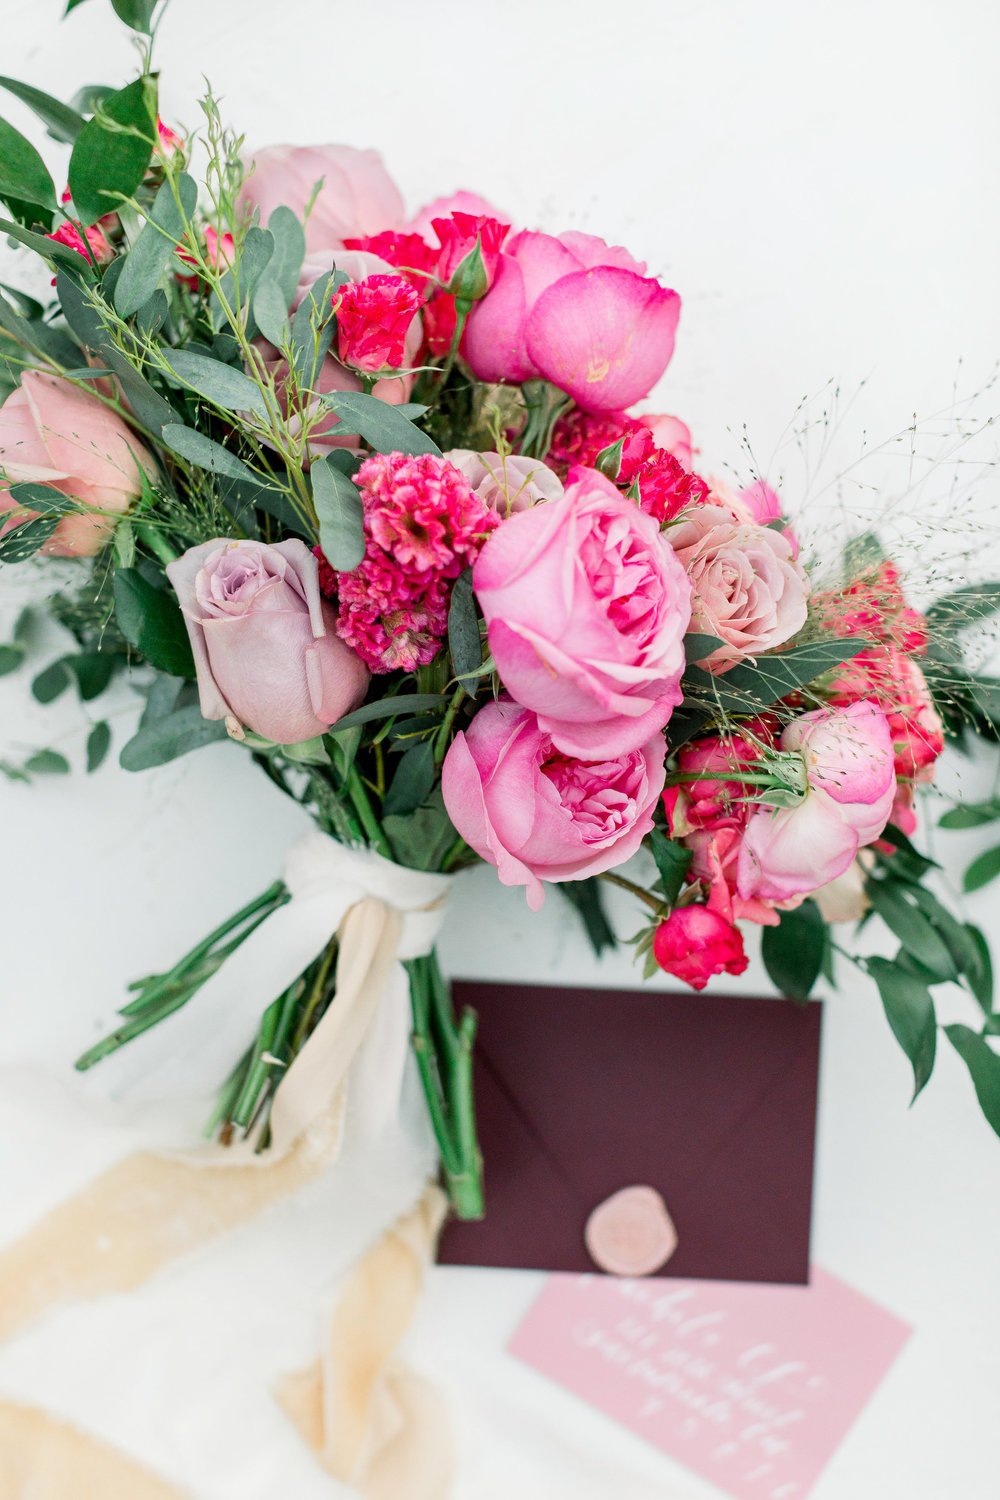 Feminine Fuchsia Inspiration Shoot June 2018  VENDORS:  VENUE:  PARK WINTERS  DESIGN, RIBBON, LINEN:  PARTY CRUSH STUDIO  PHOTOGRAPHY, CALLIGRAPHY:  ASHLEY BAUMGARTNER  FLORAL DESIGN:  MIGNON FLORAL CO.  BRIDAL GOWN, VEIL:  LA SOIE BRIDAL  DESSERT:  ROSE QUARTZ CAKERY  MAKEUP:  MAKEUP BY SUSIE  BRIDE:  THE KACHET LIFE  RING BOX:  THE MRS. BOX